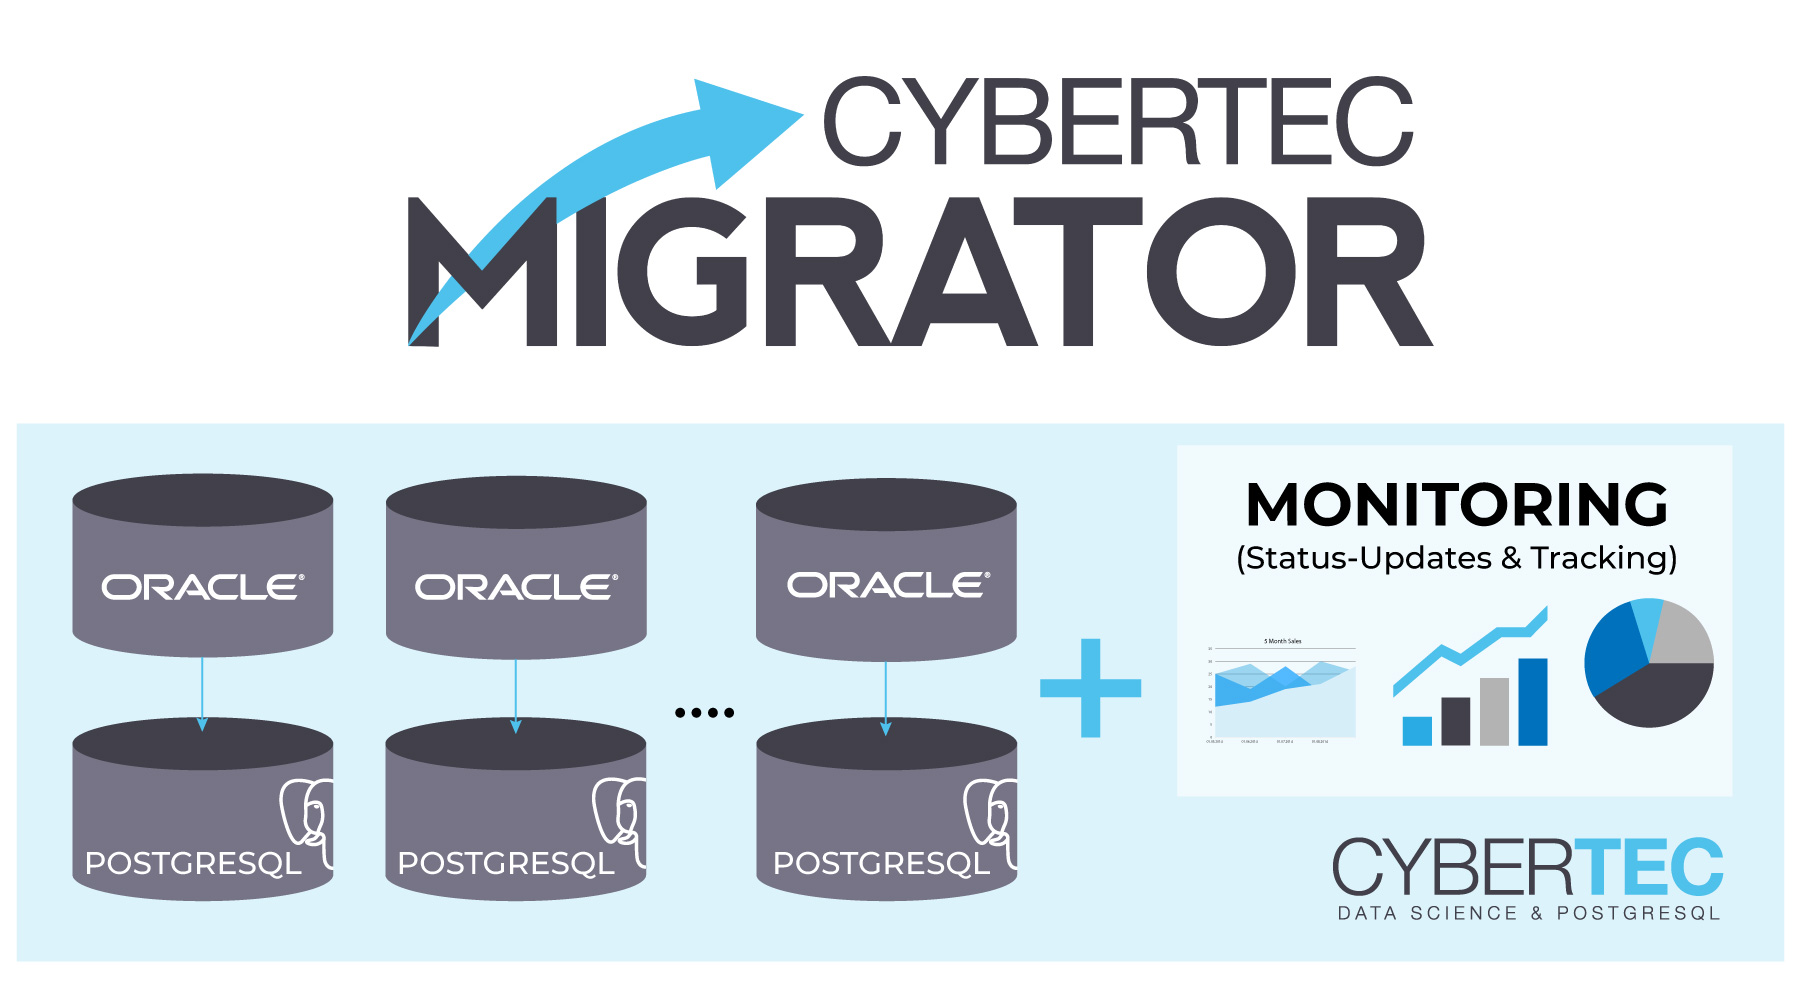 CYBERTEC Migrator - from Oracle to PostgreSQL